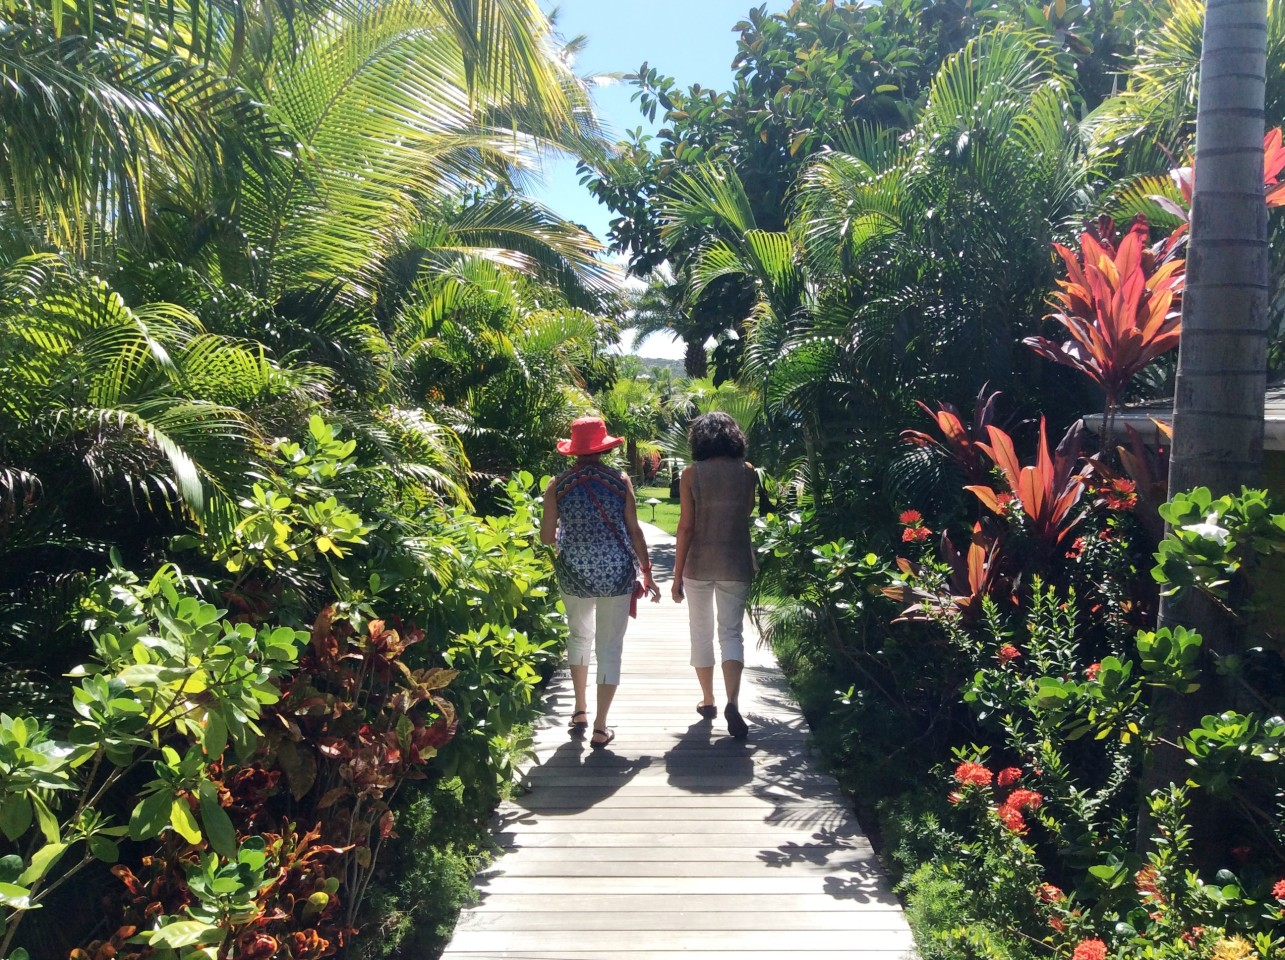 Le Guanahani - an exquisite resort on tres chic St Barth